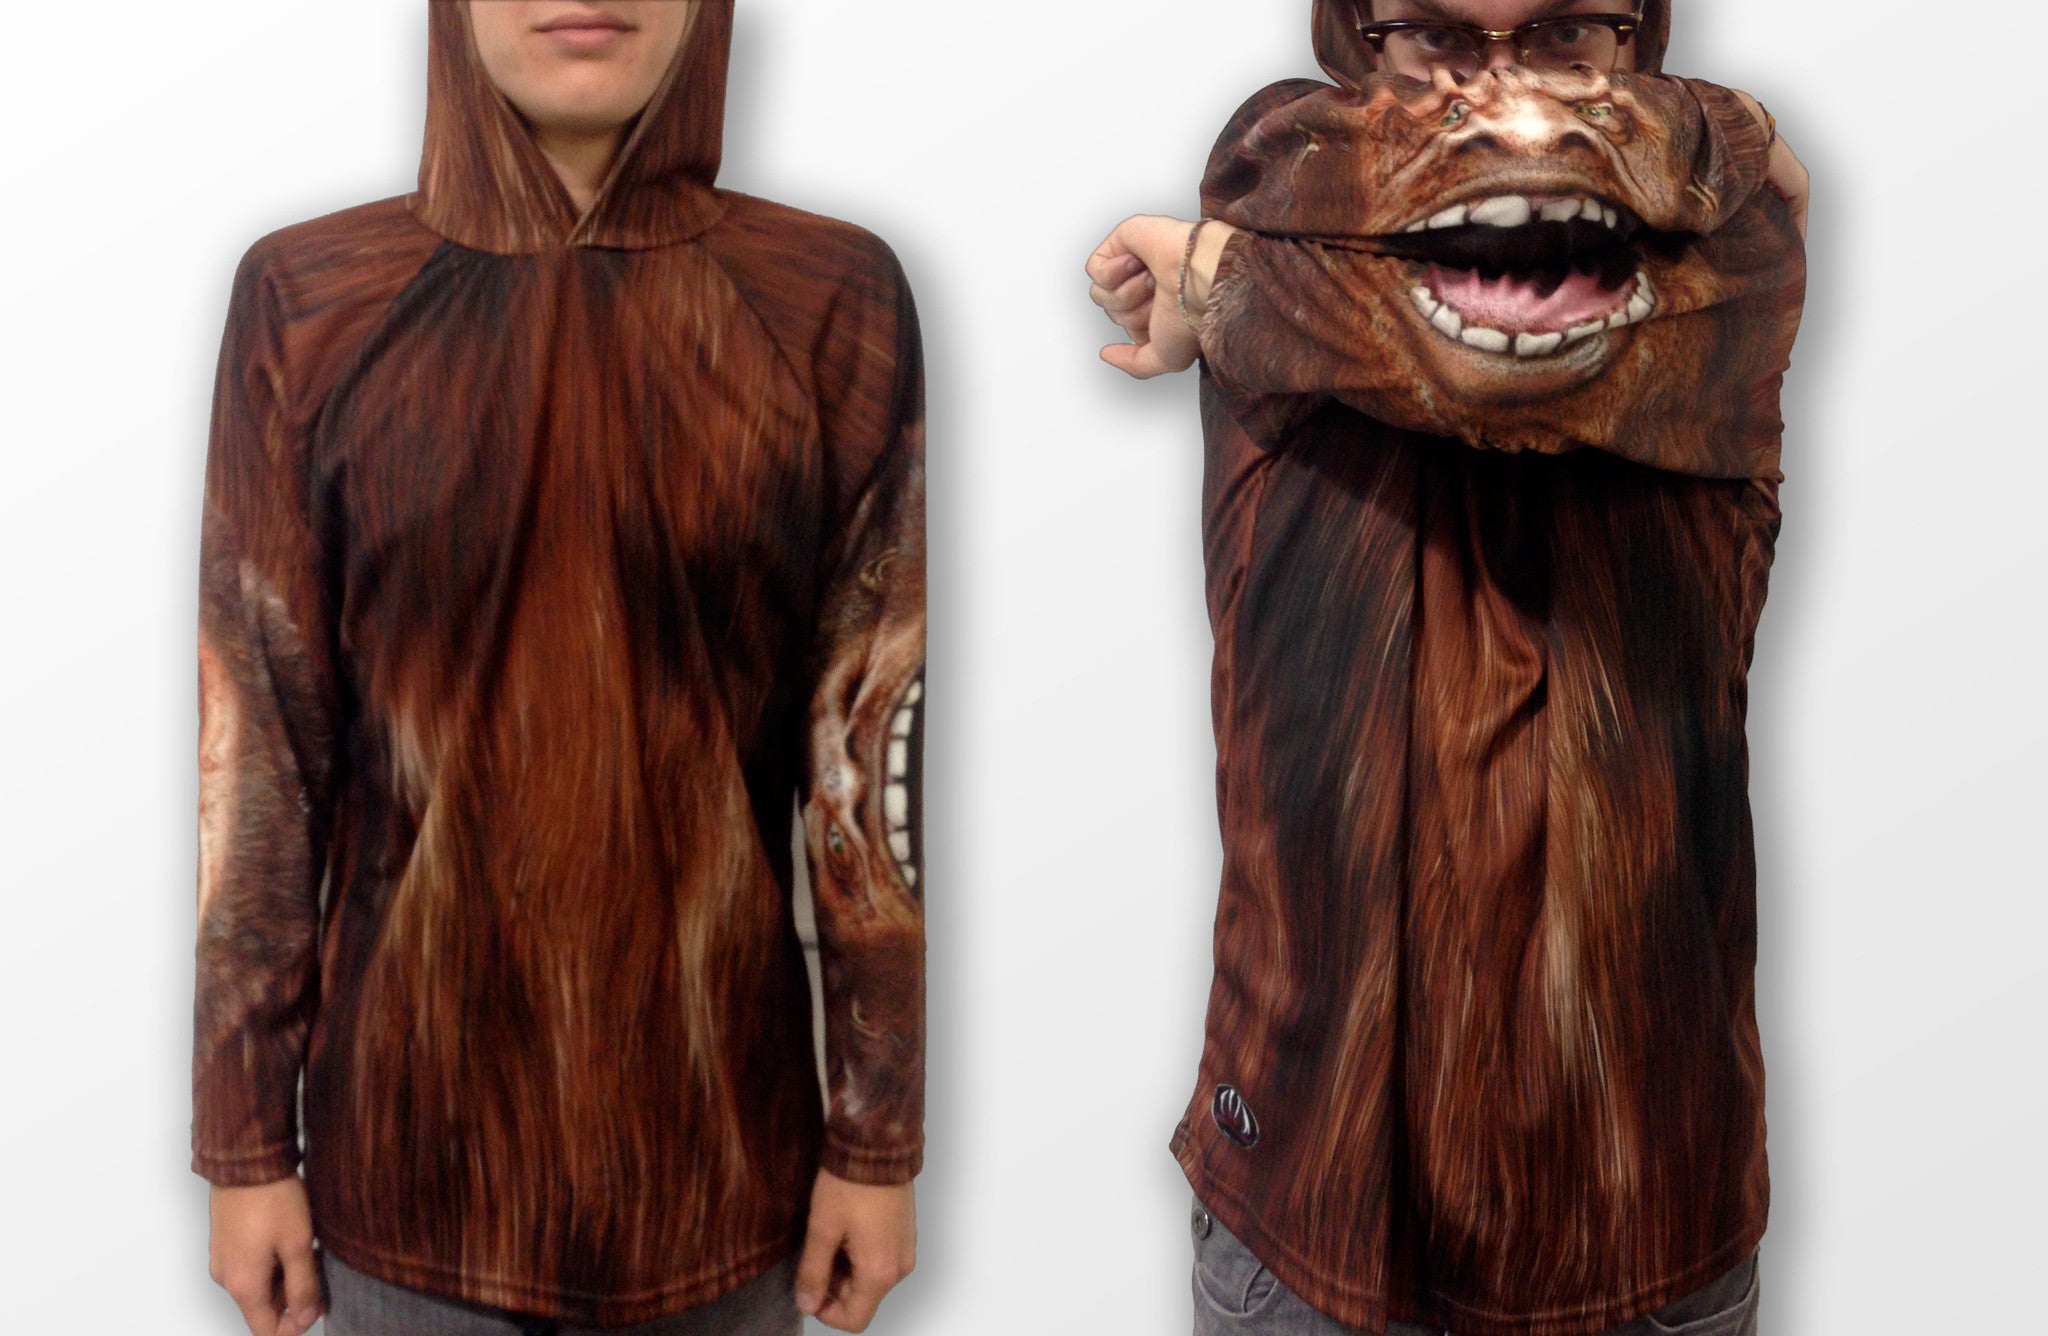 Bigfoot Hoodie Shirt with Bigfoot mouth on the sleeves